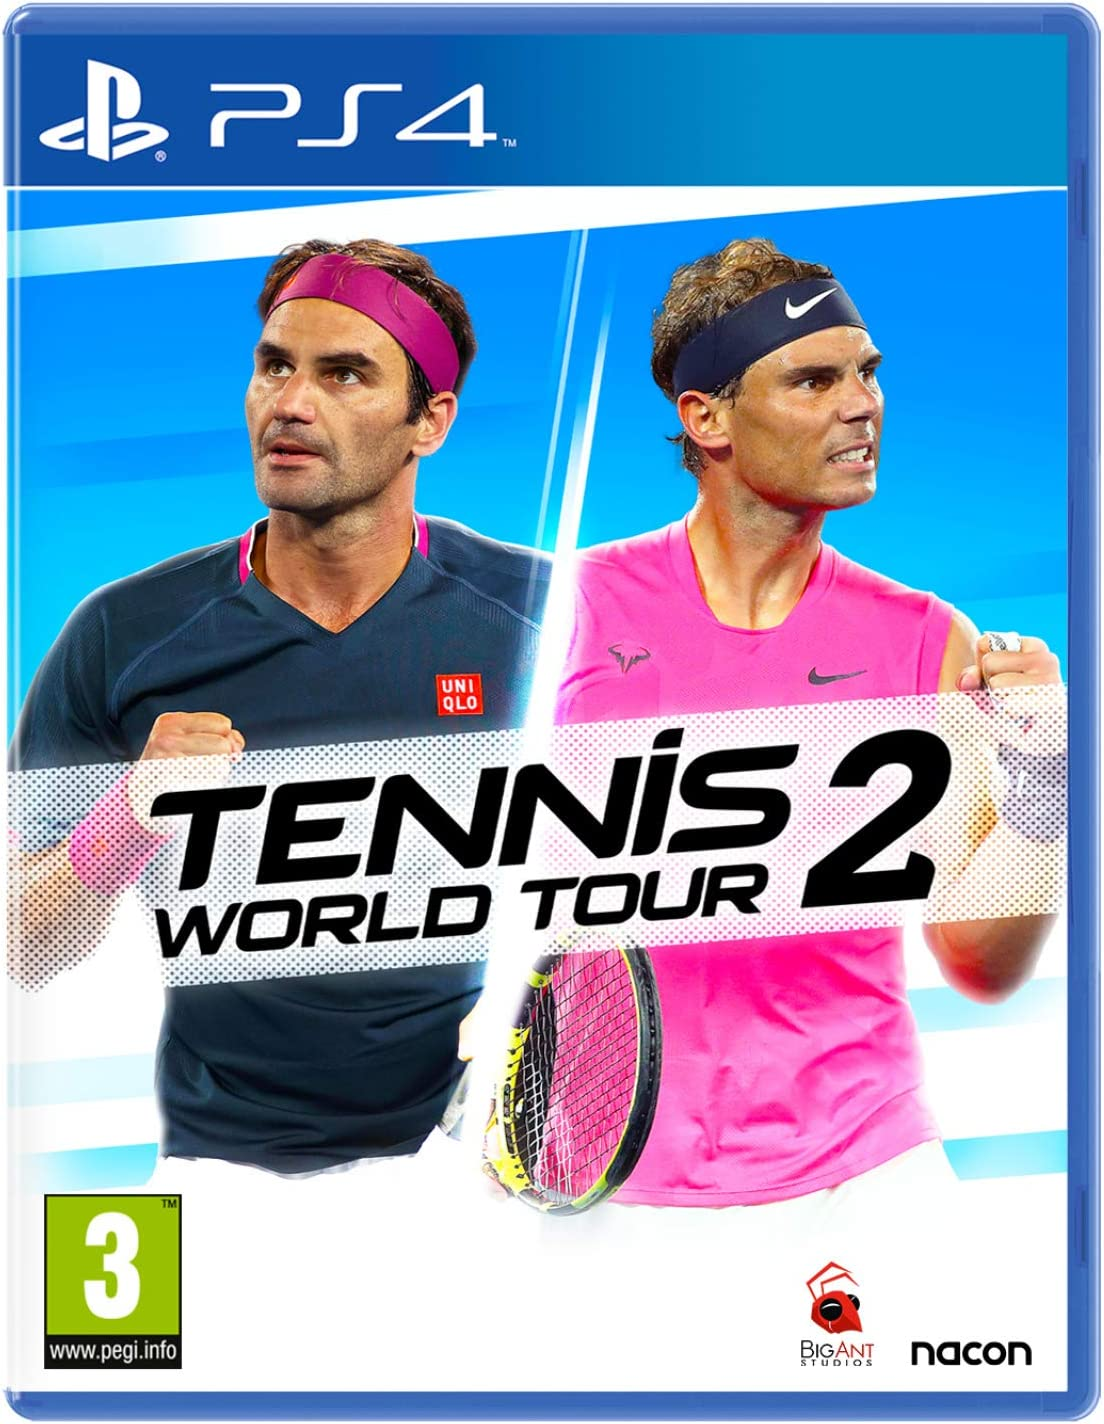 Tennis World Tour 2 PS4 [Version Española]